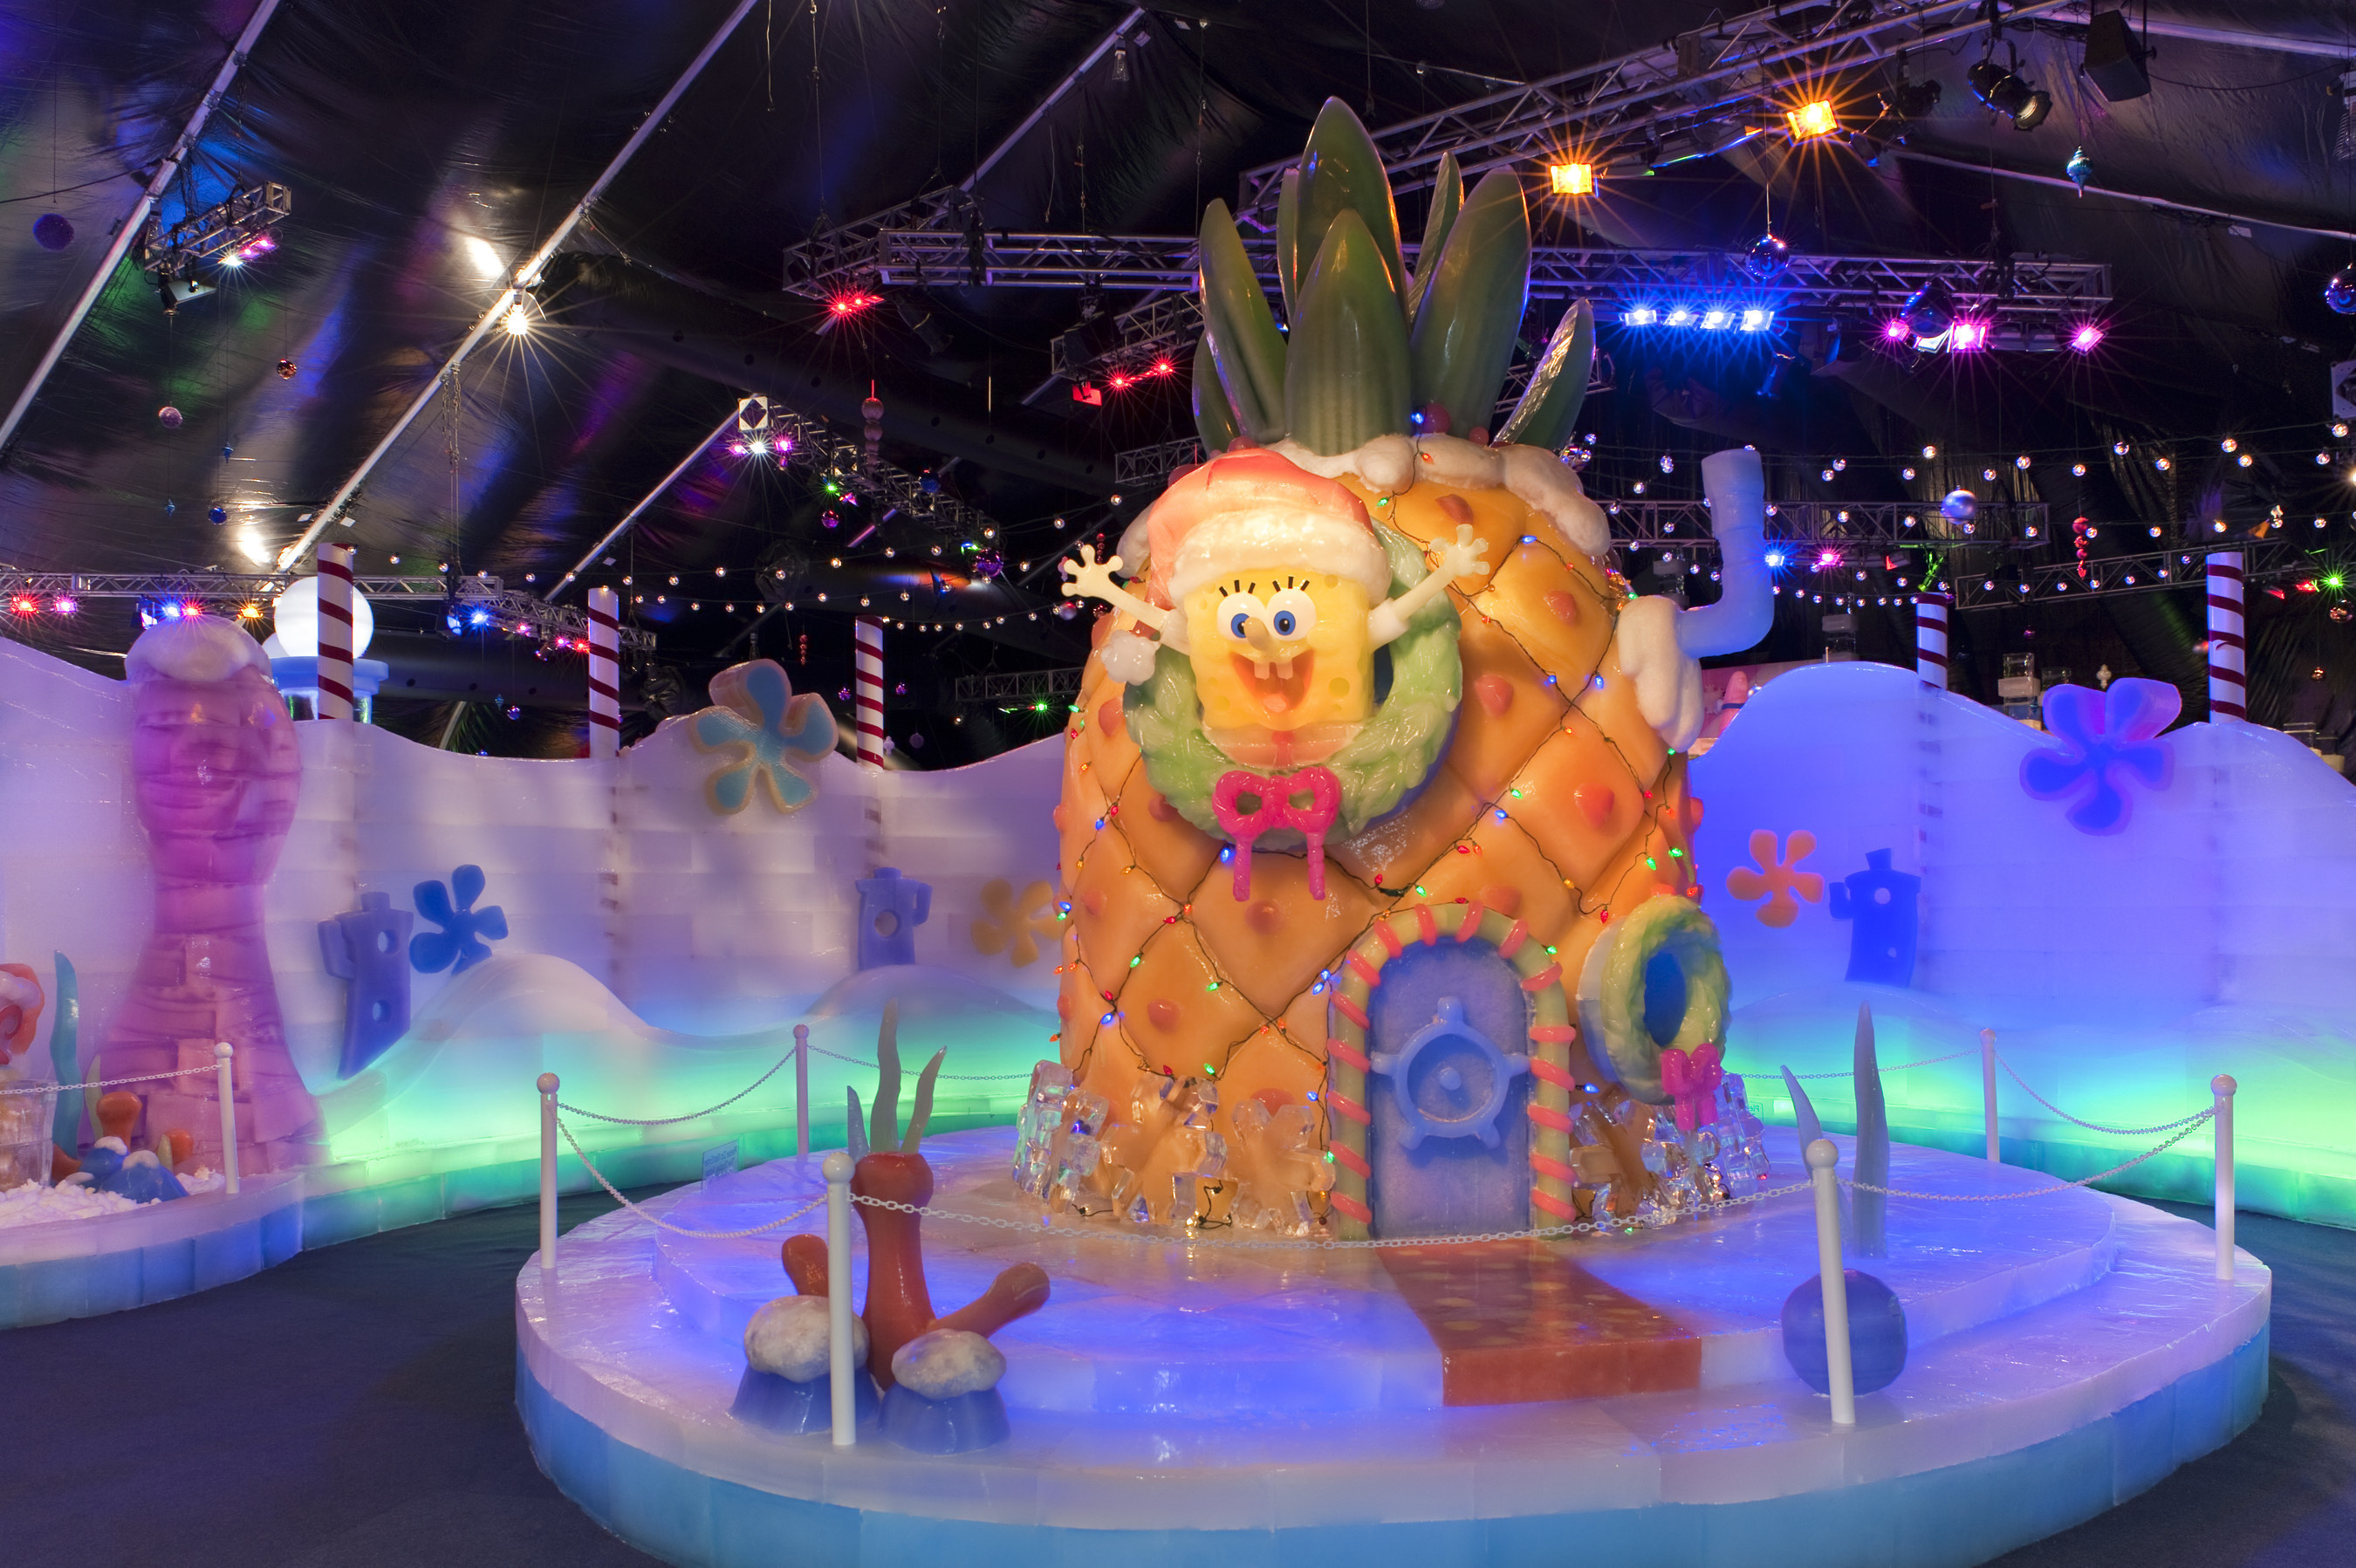 The new ICE LAND Ice Sculptures with SpongeBob SquarePants is one of many holiday attractions that Moody ...